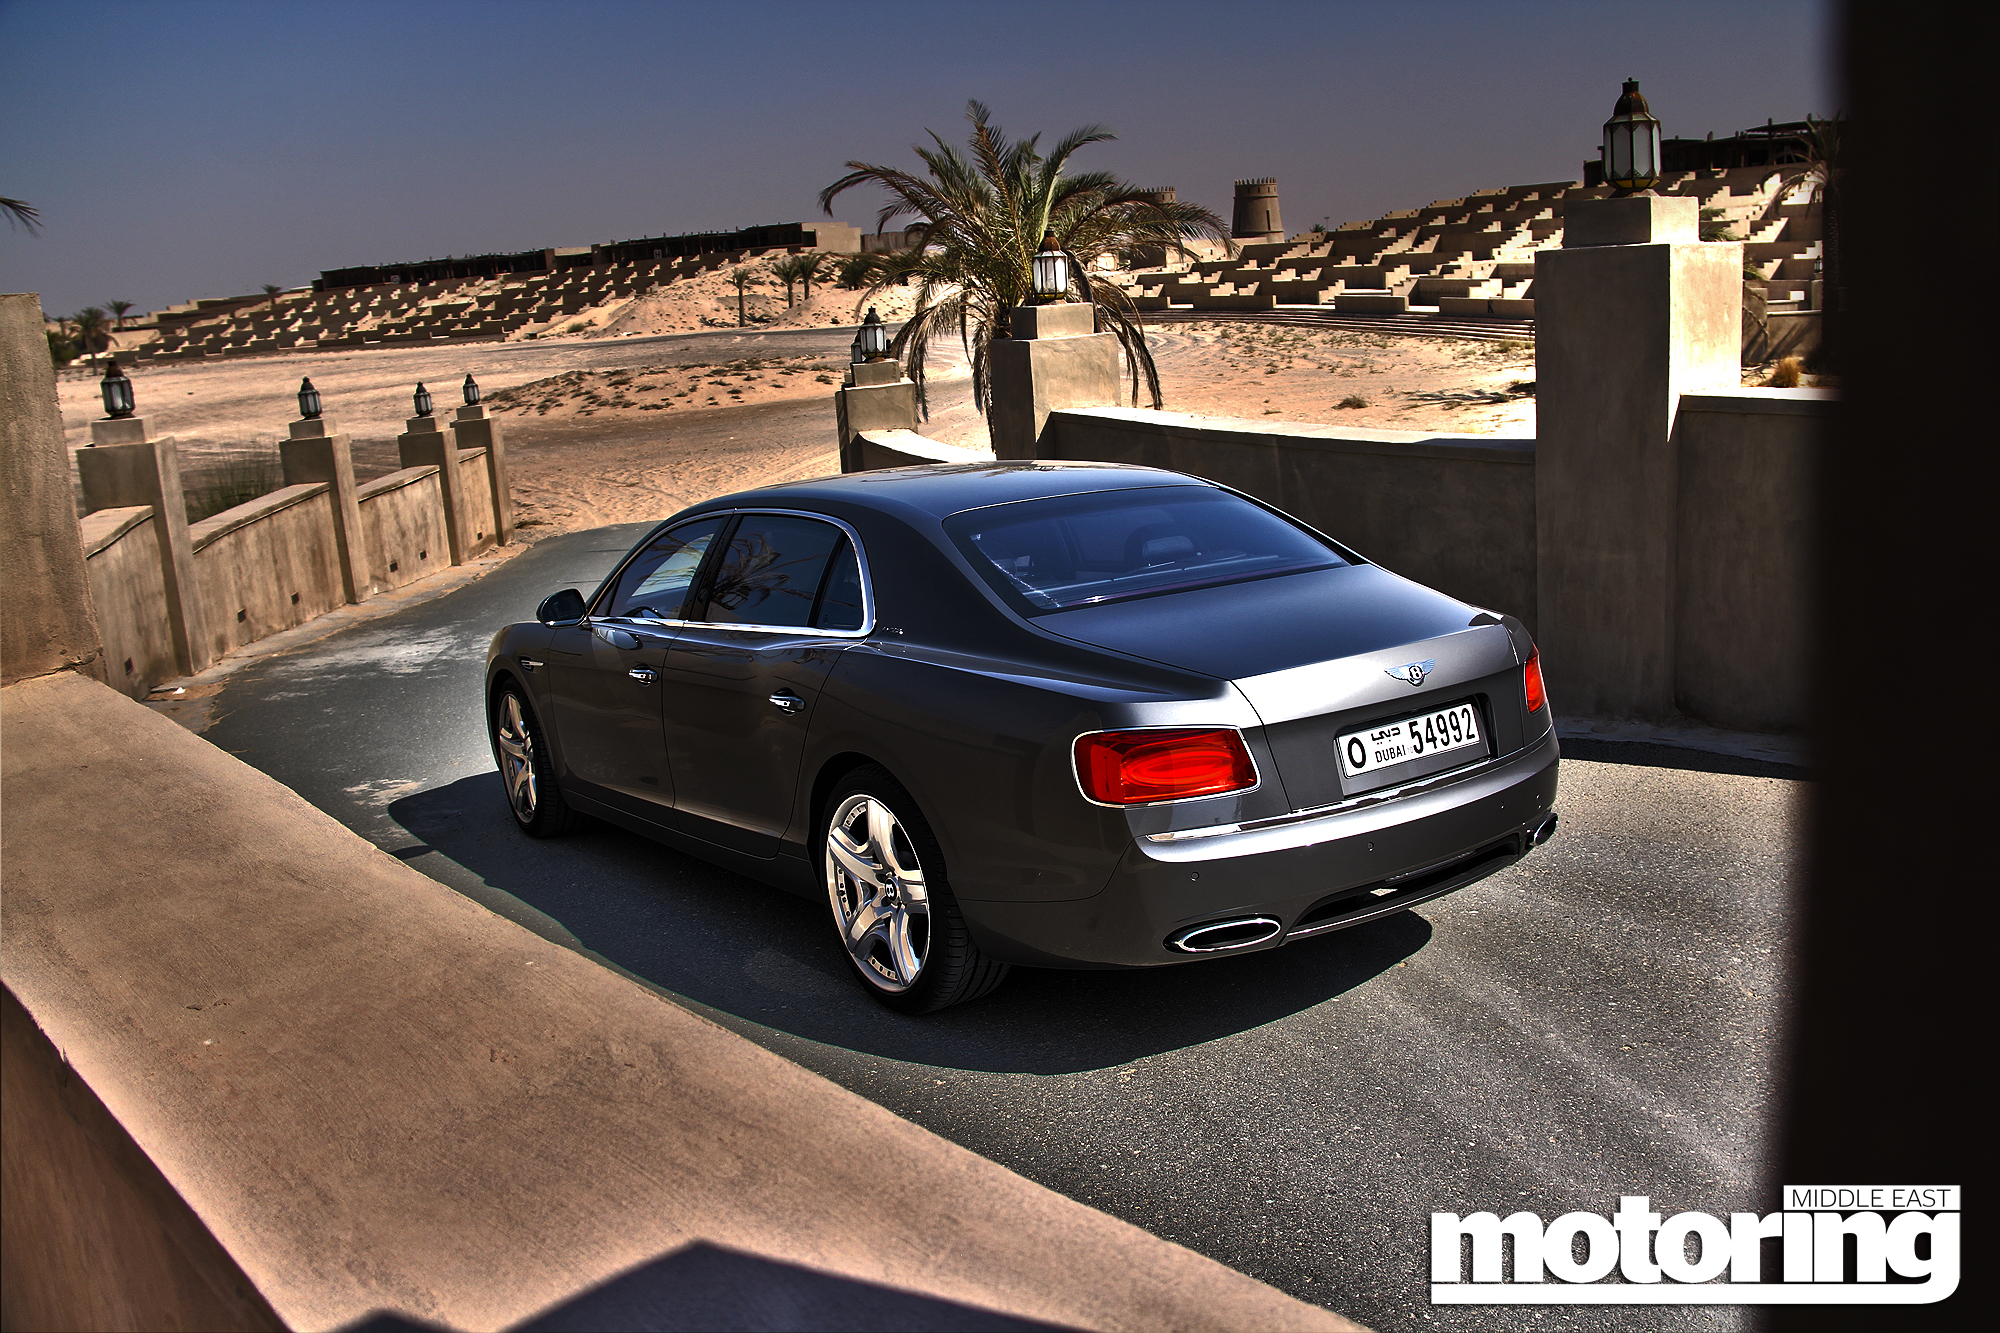 2014 Bentley Flying Spur Review Motoring Middle East